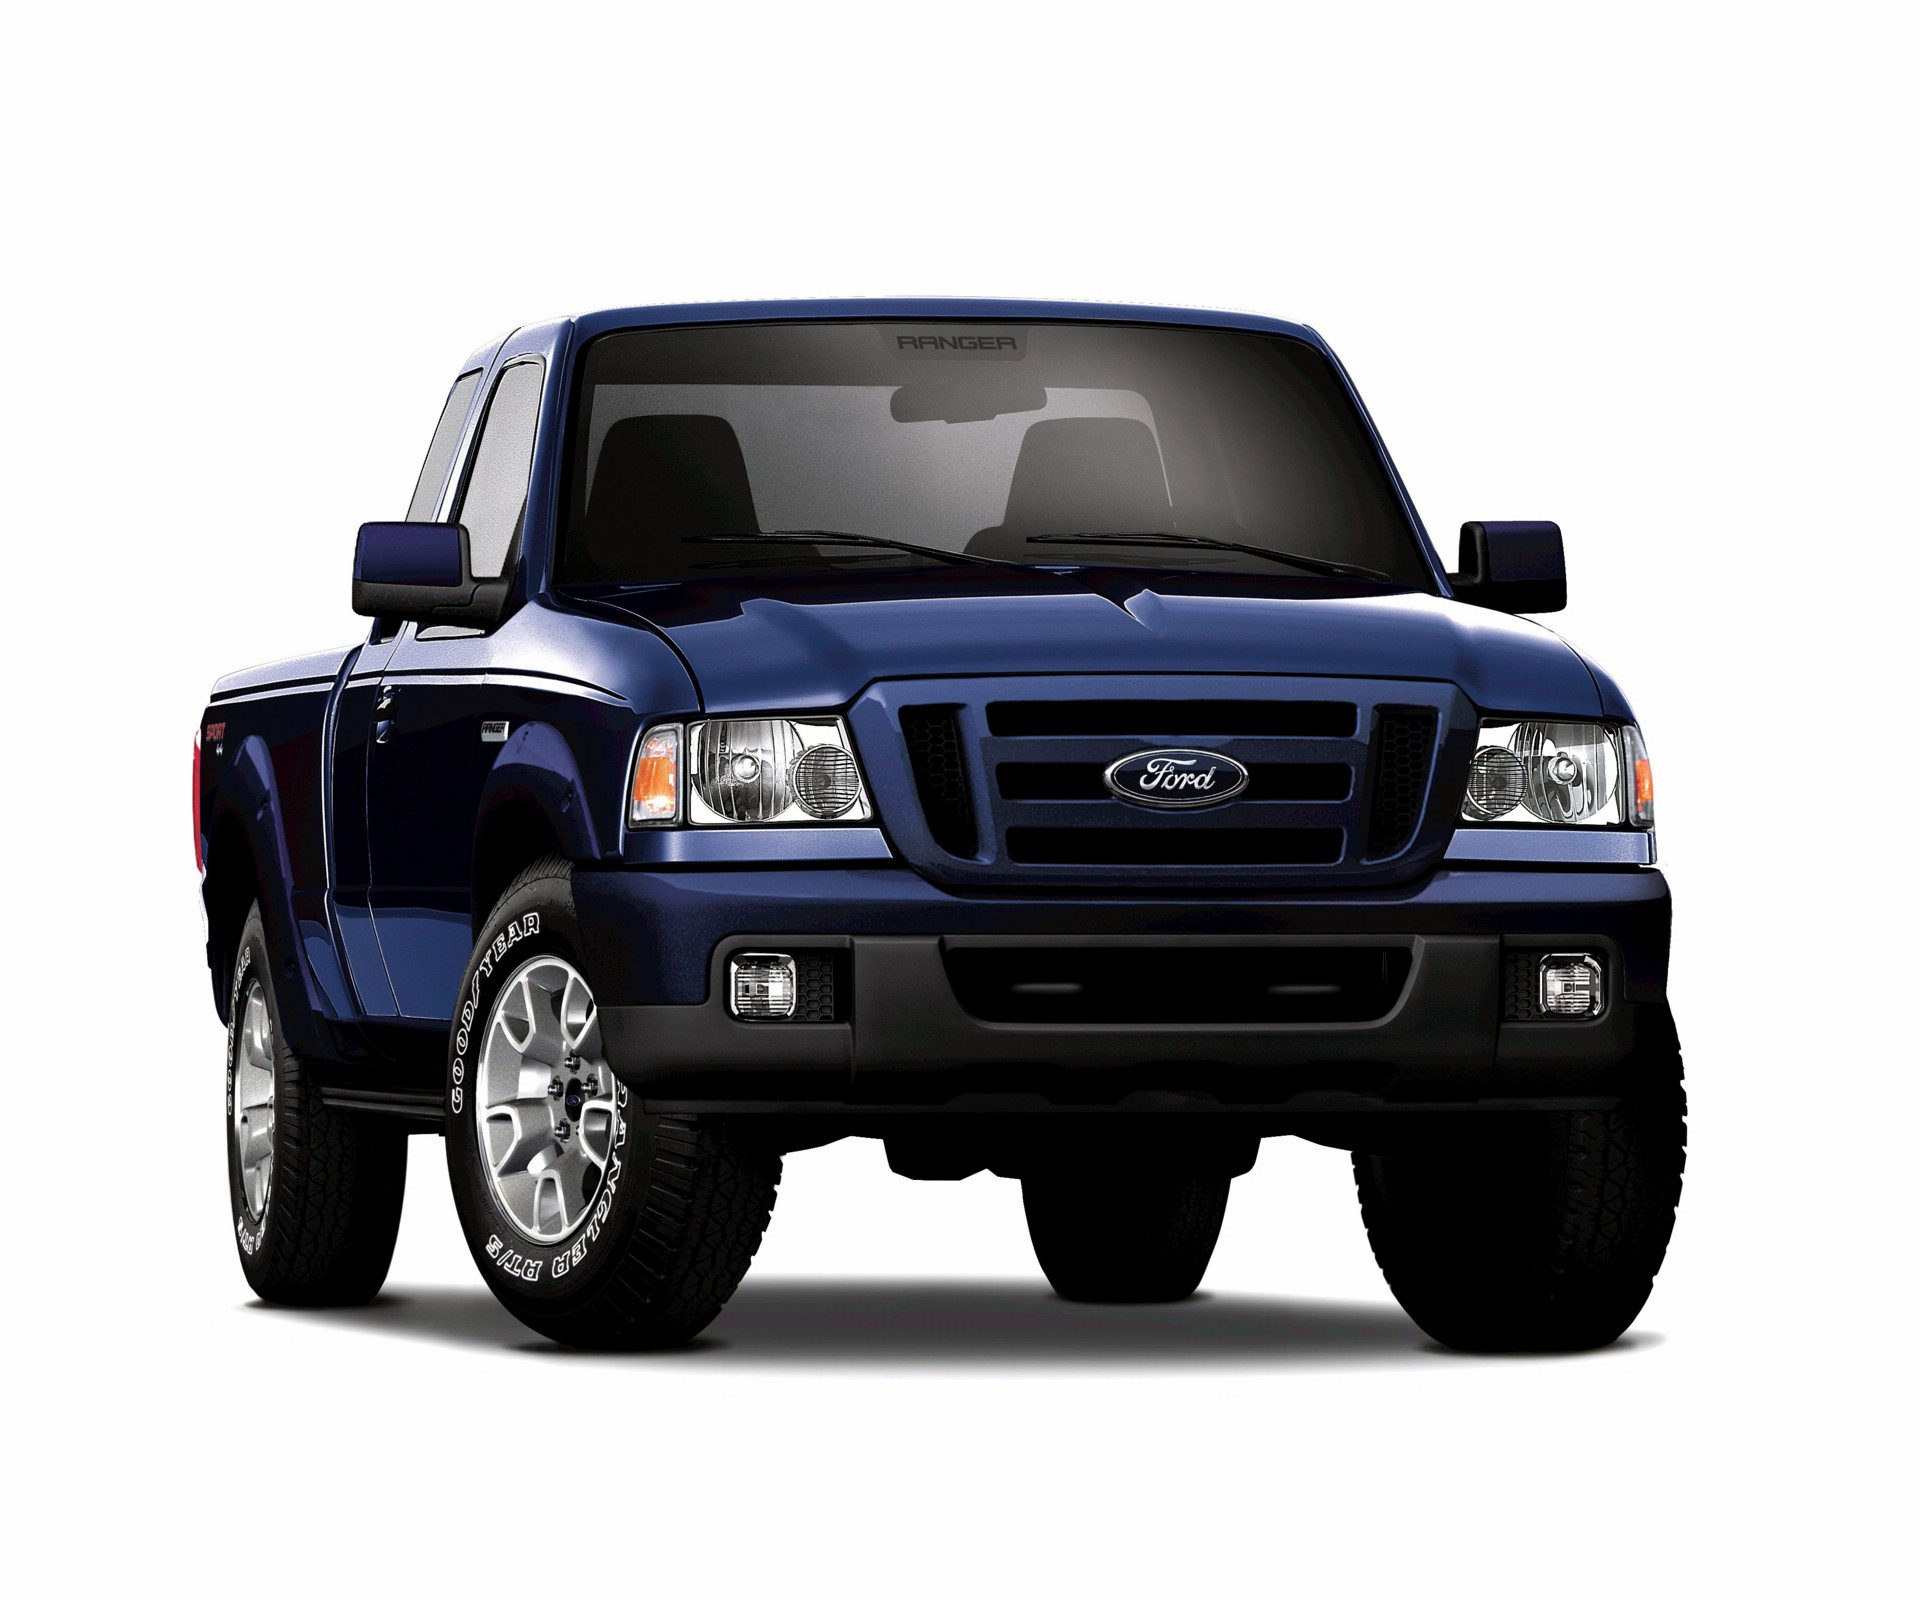 2007 Ford Ranger Technical Specifications And Data. Engine